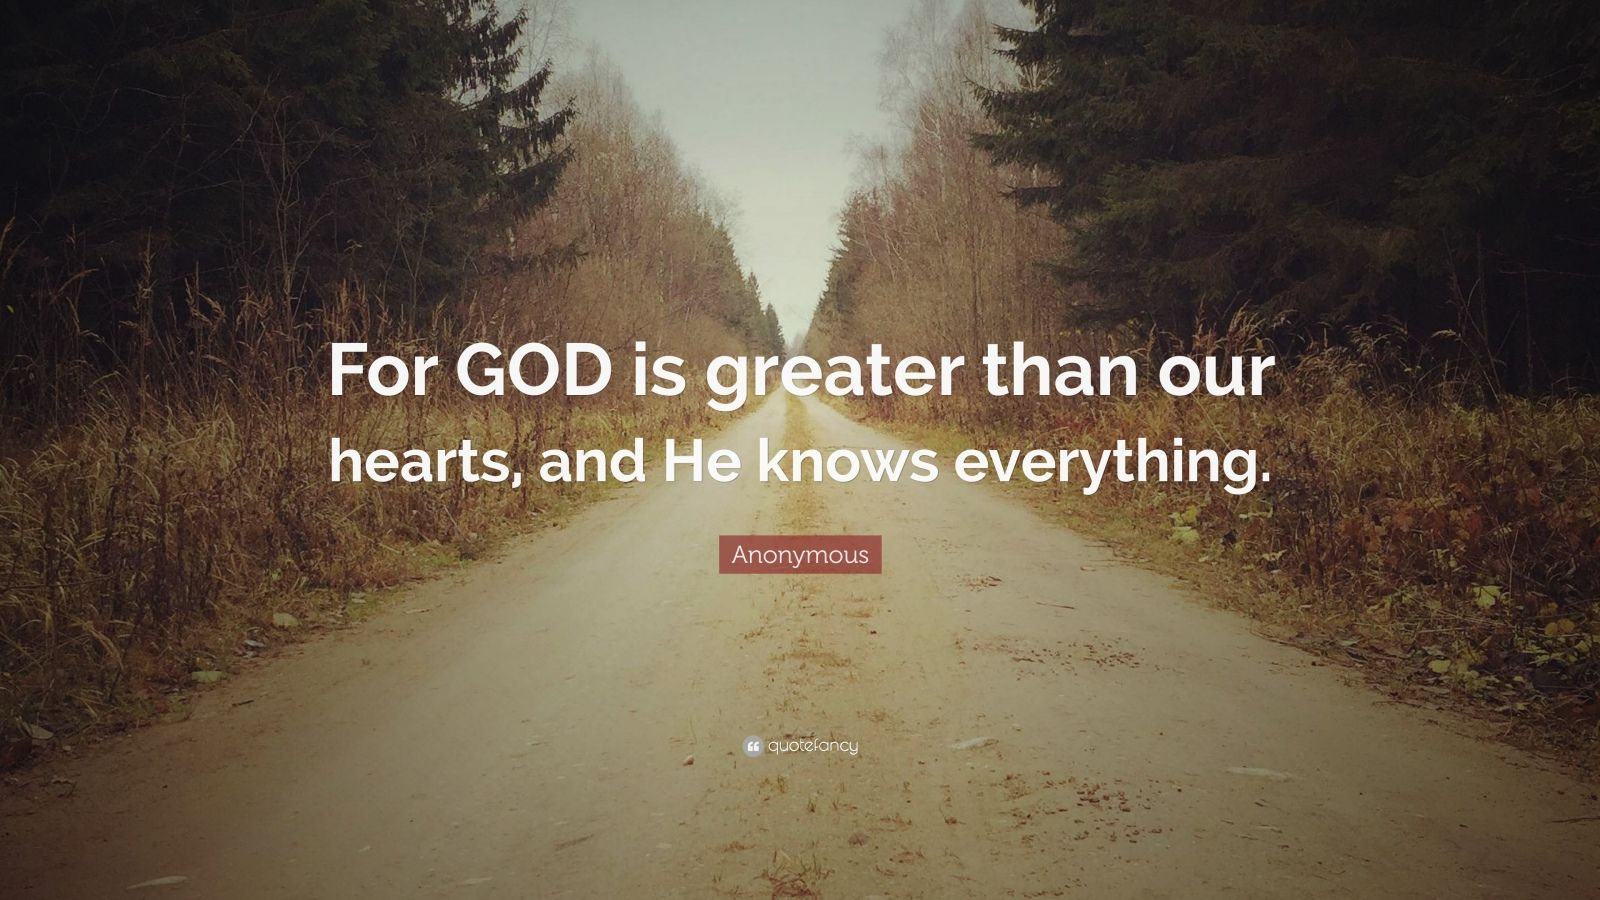 Inspirational Quotes Life Wallpapers Desktop Anonymous Quote For God Is Greater Than Our Hearts And